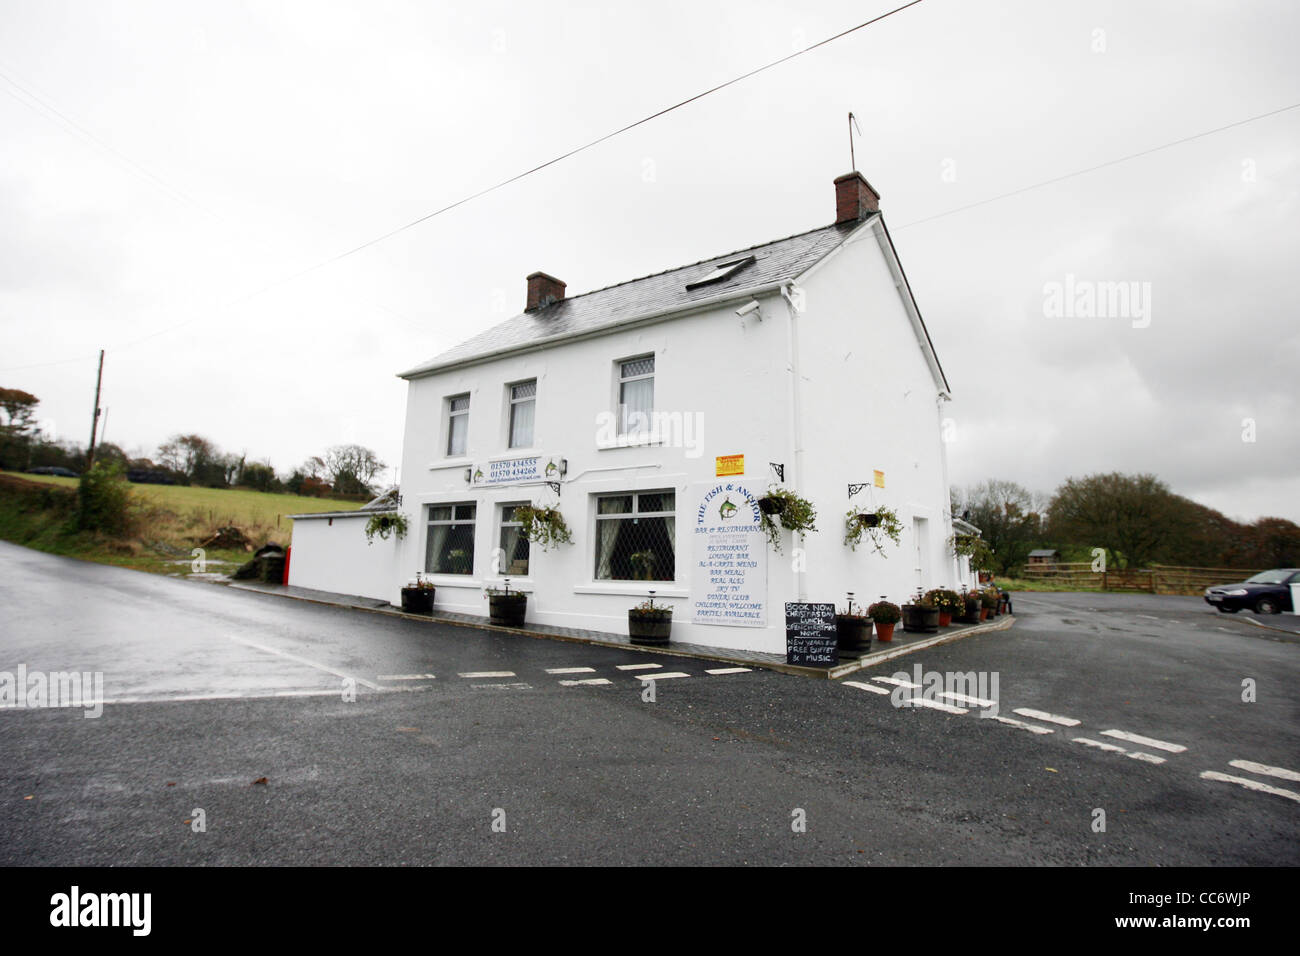 The Fish and Anchor pub near Lampeter Wales, which featured in ...